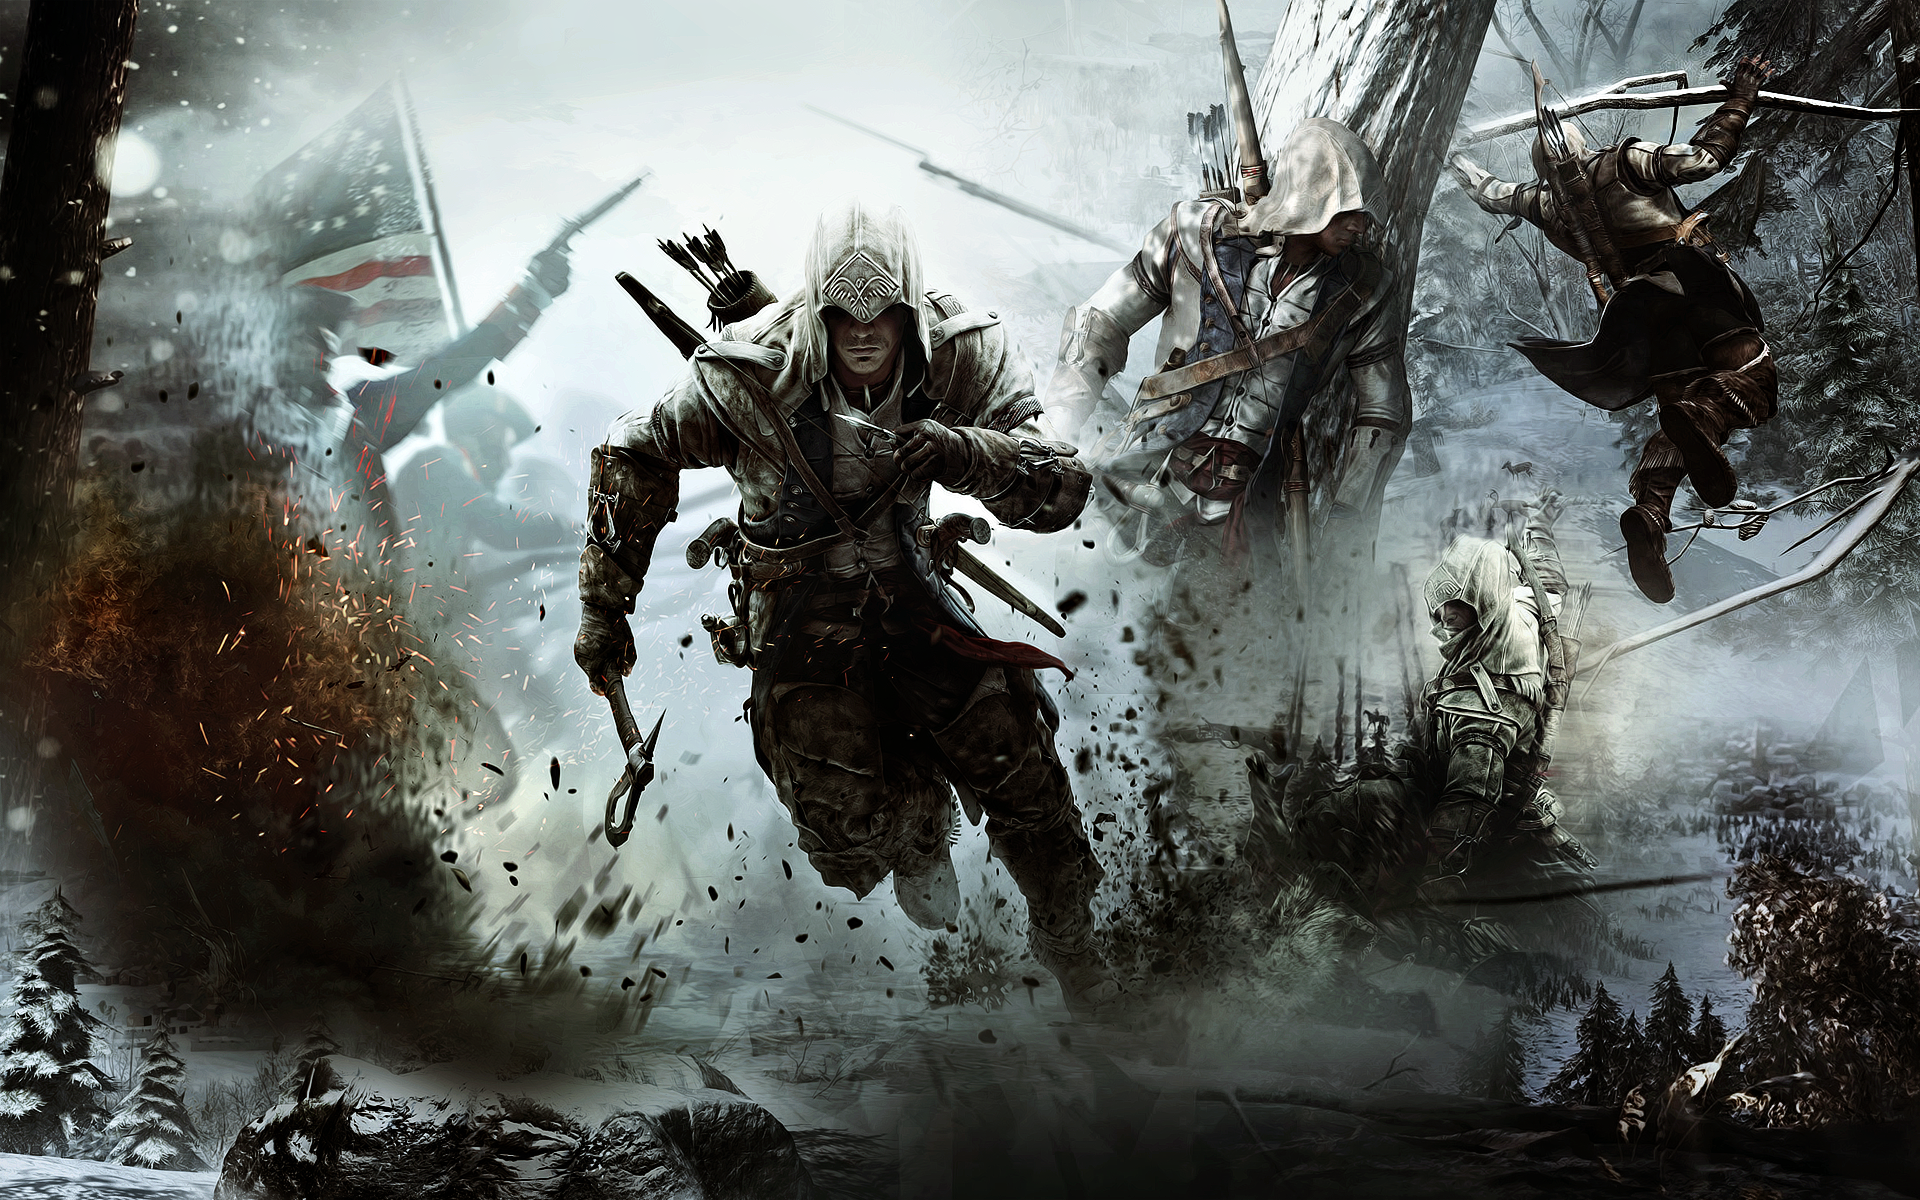 Assassins Creed Iii High Resolution Wallpapers For Desktop Png